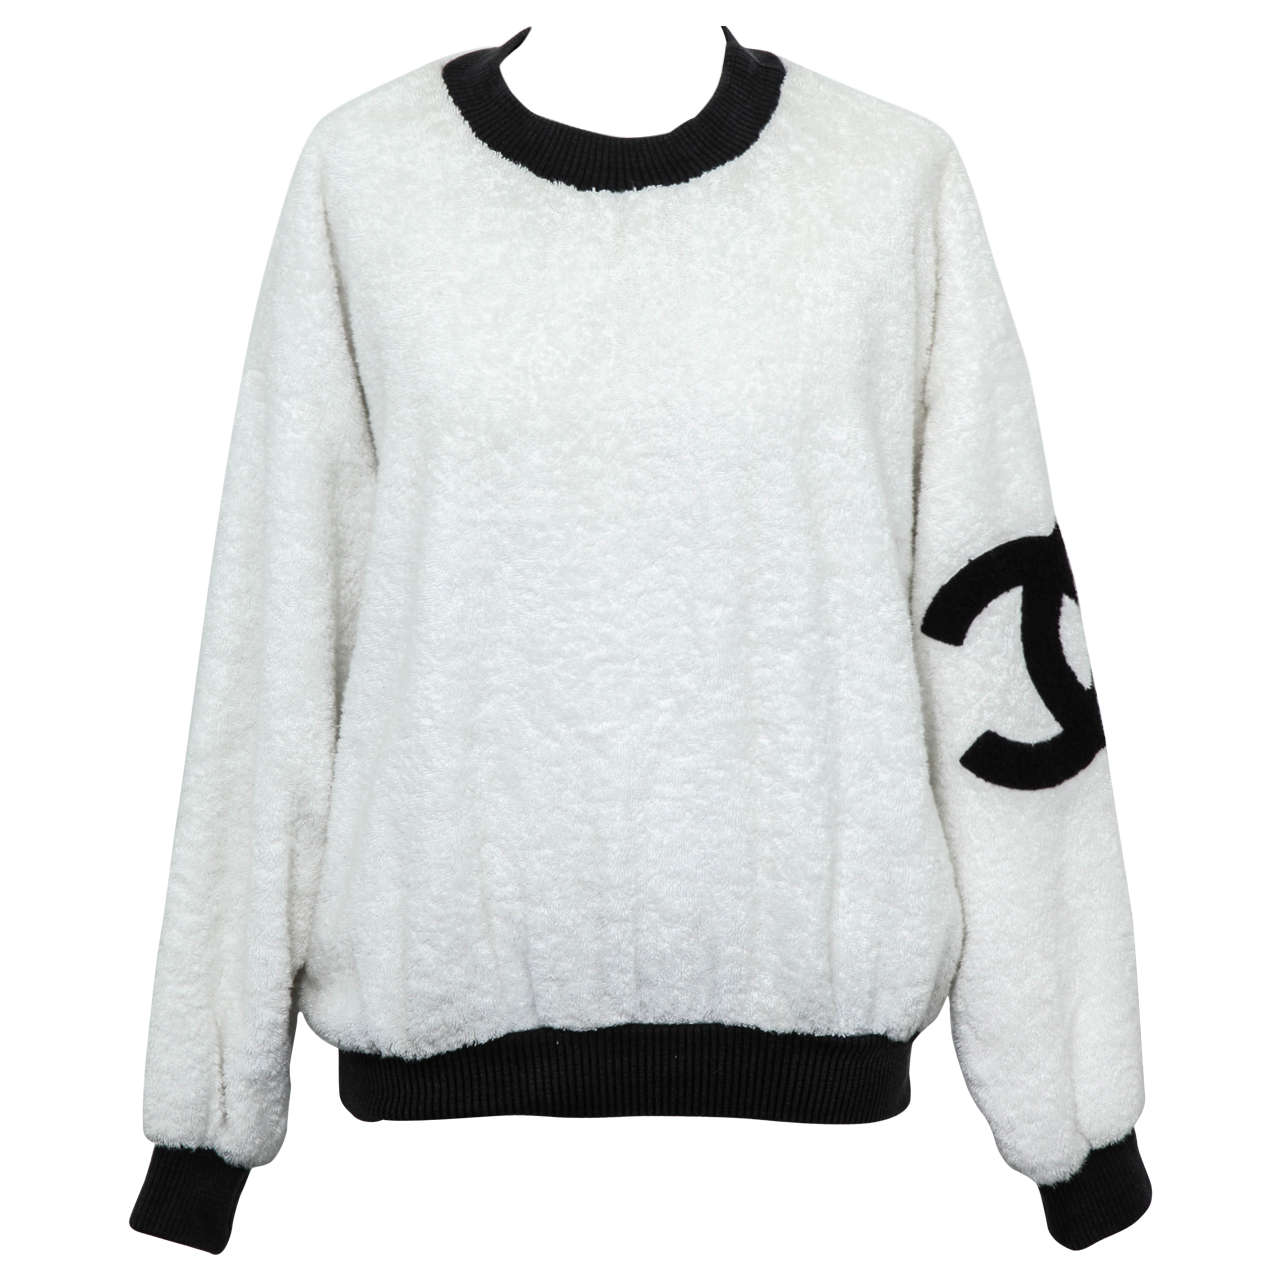 Vintage Chanel Sweat Shirt Sweater with Iconic CC